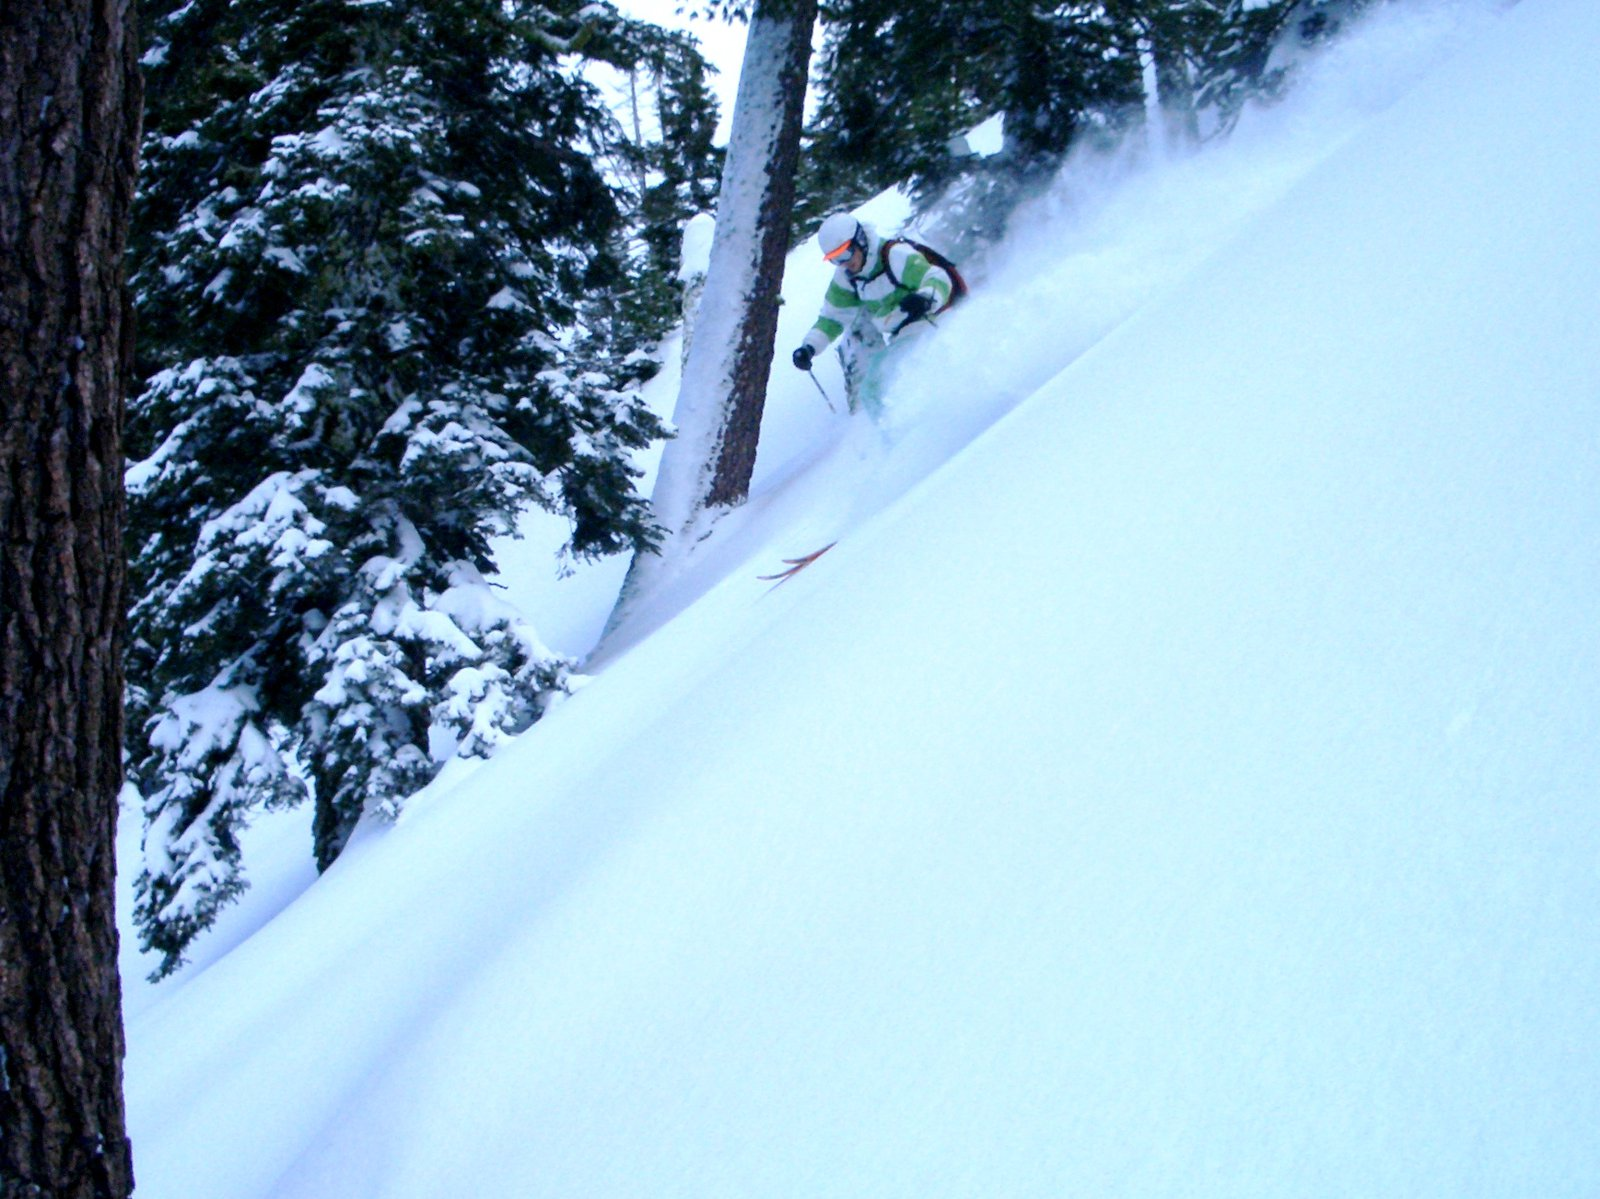 The Stash at Squaw